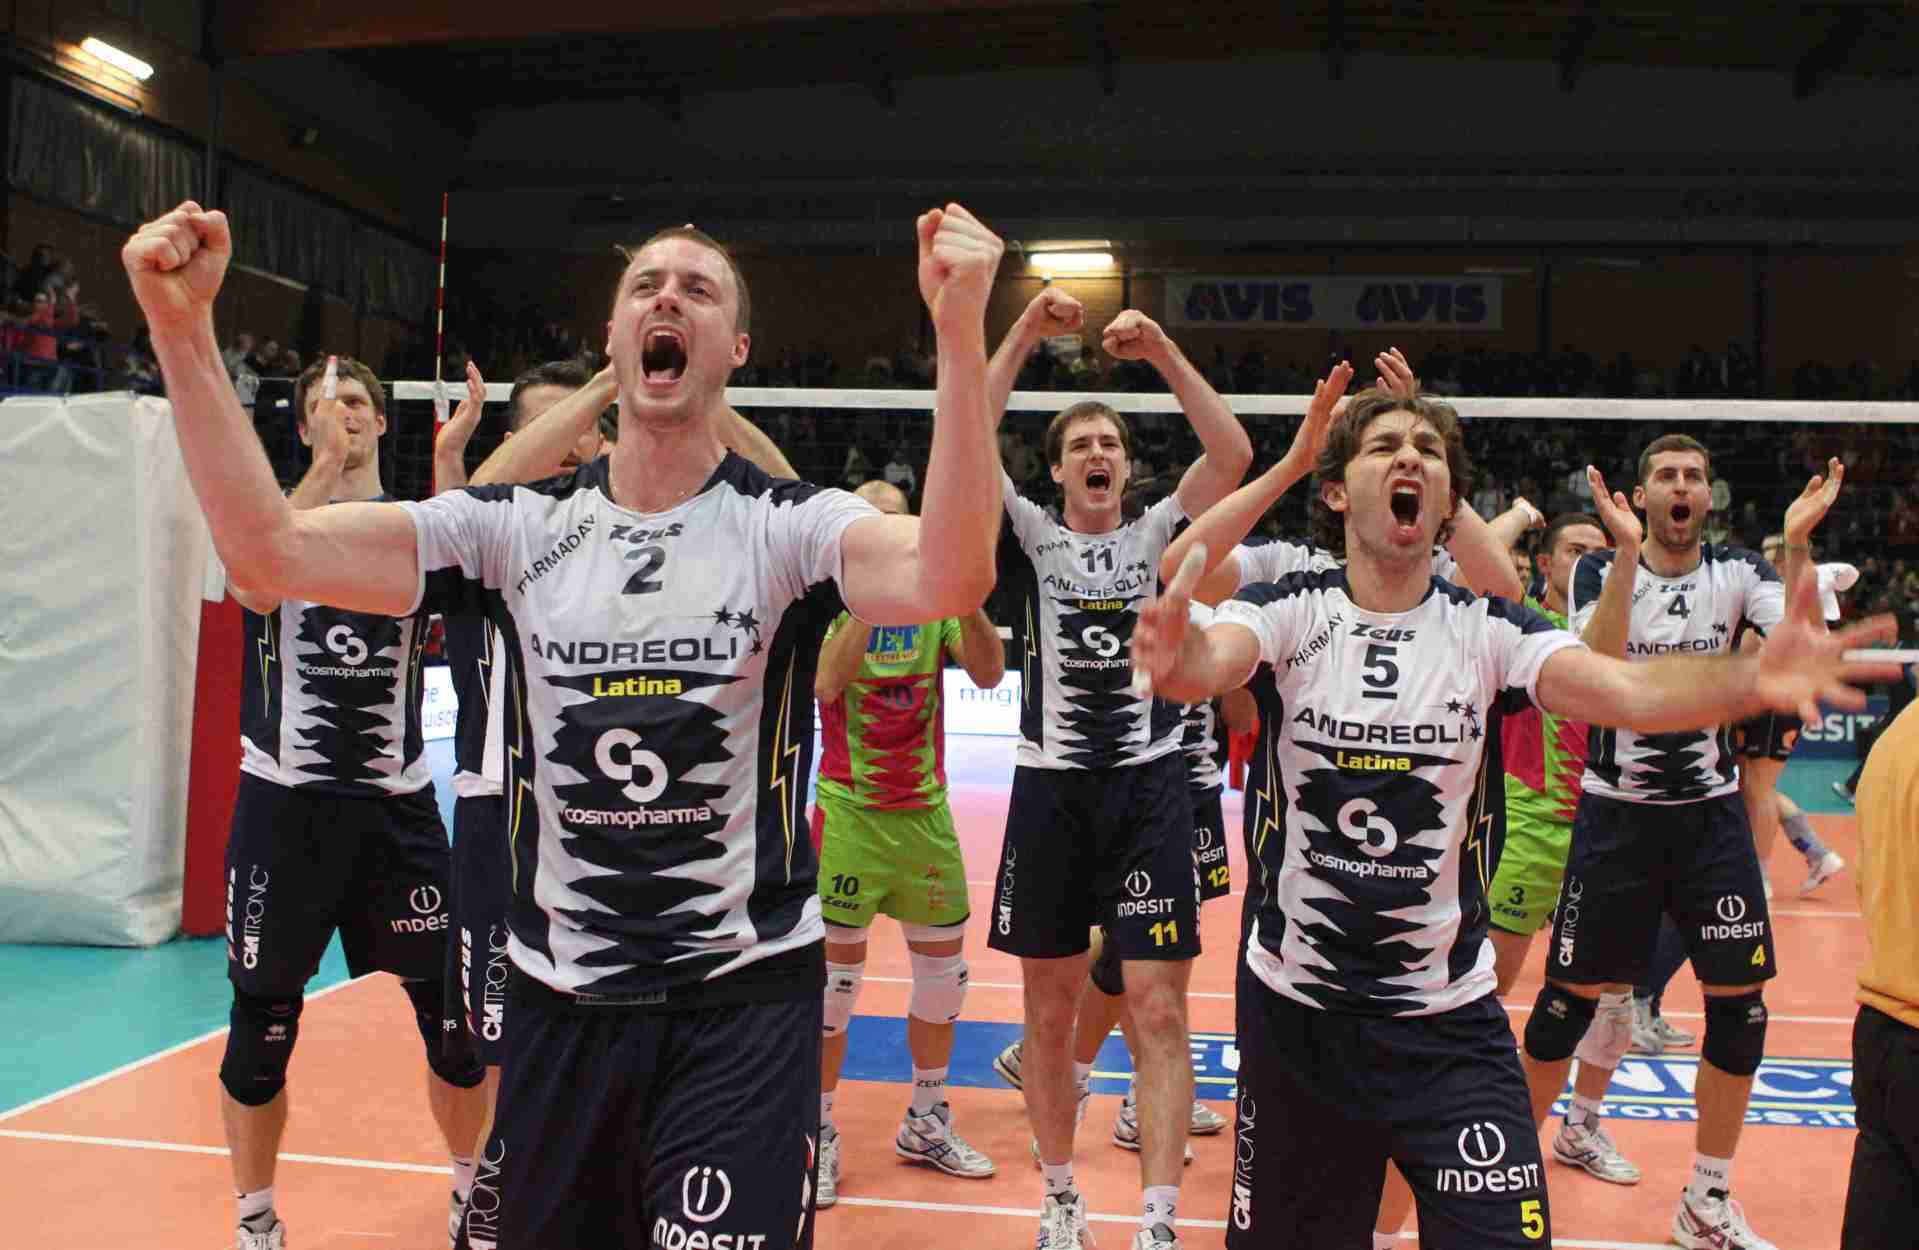 andreoli-cev-cup-latina-24-ore-339